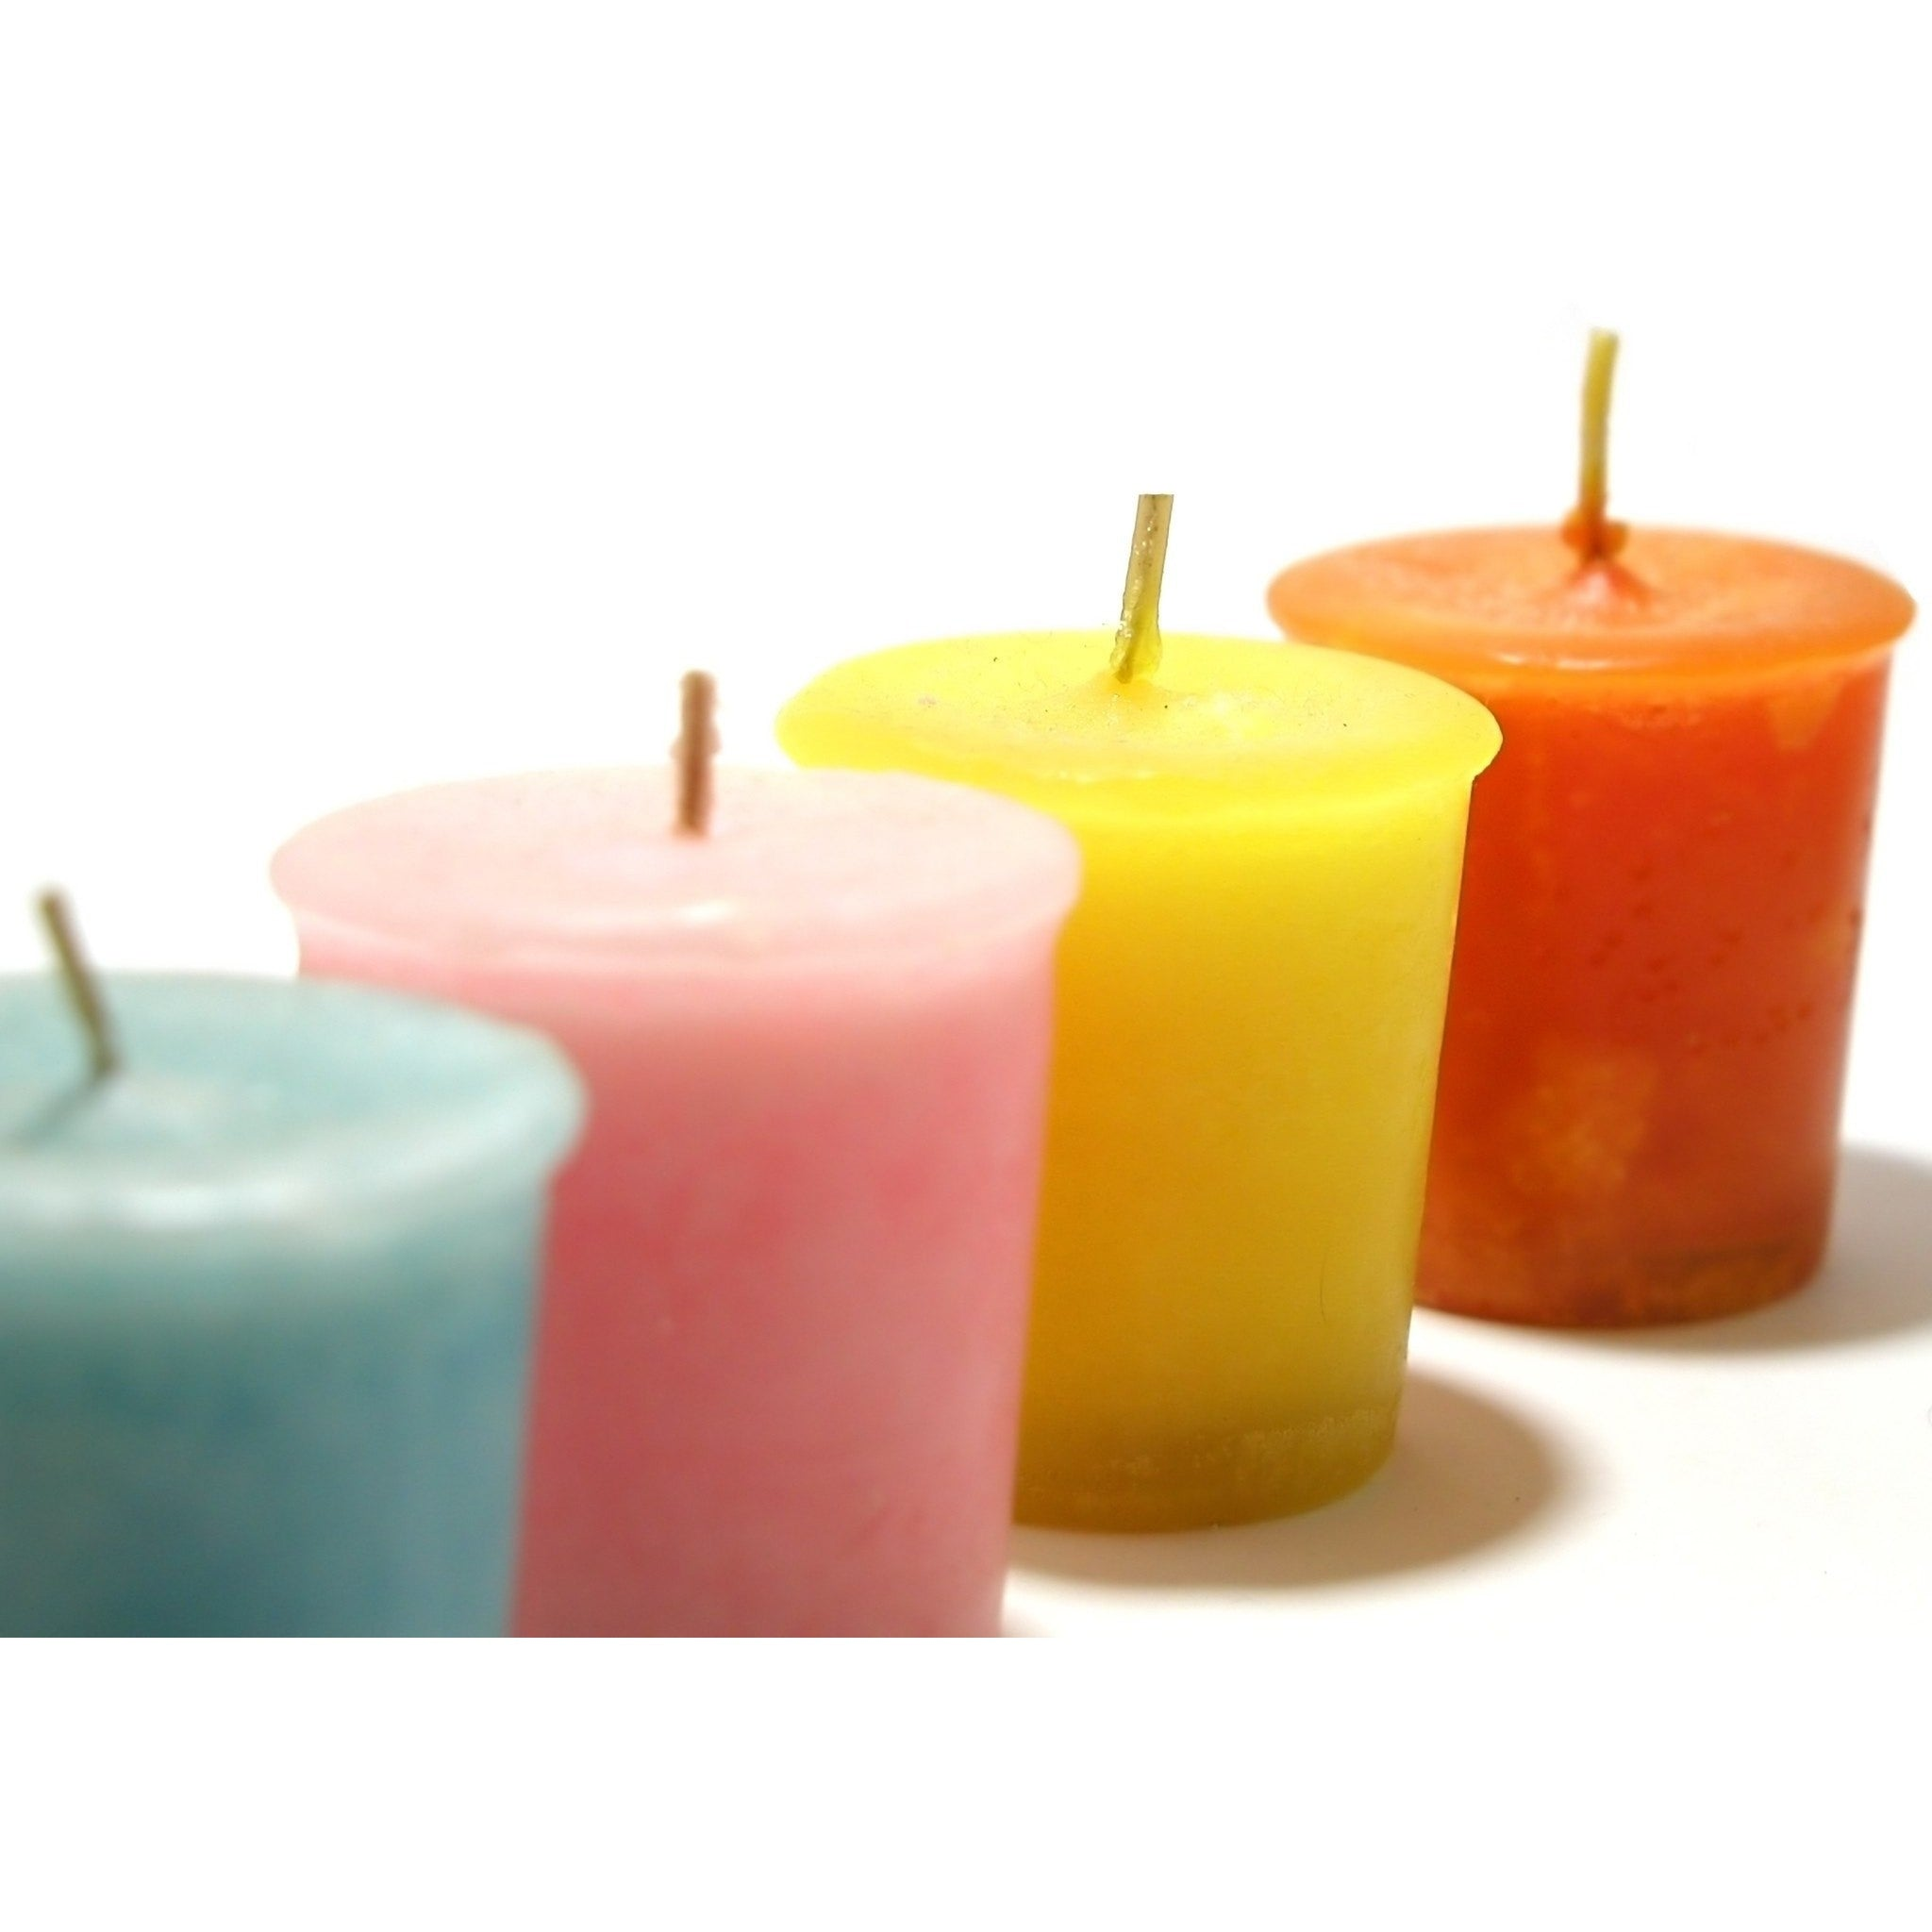 Lovely-Lavender Natural Hand Poured Soy Candles - Votive-Single - Bella-Mia Naturals All Natural Soy Candles & Lip Balms - 10